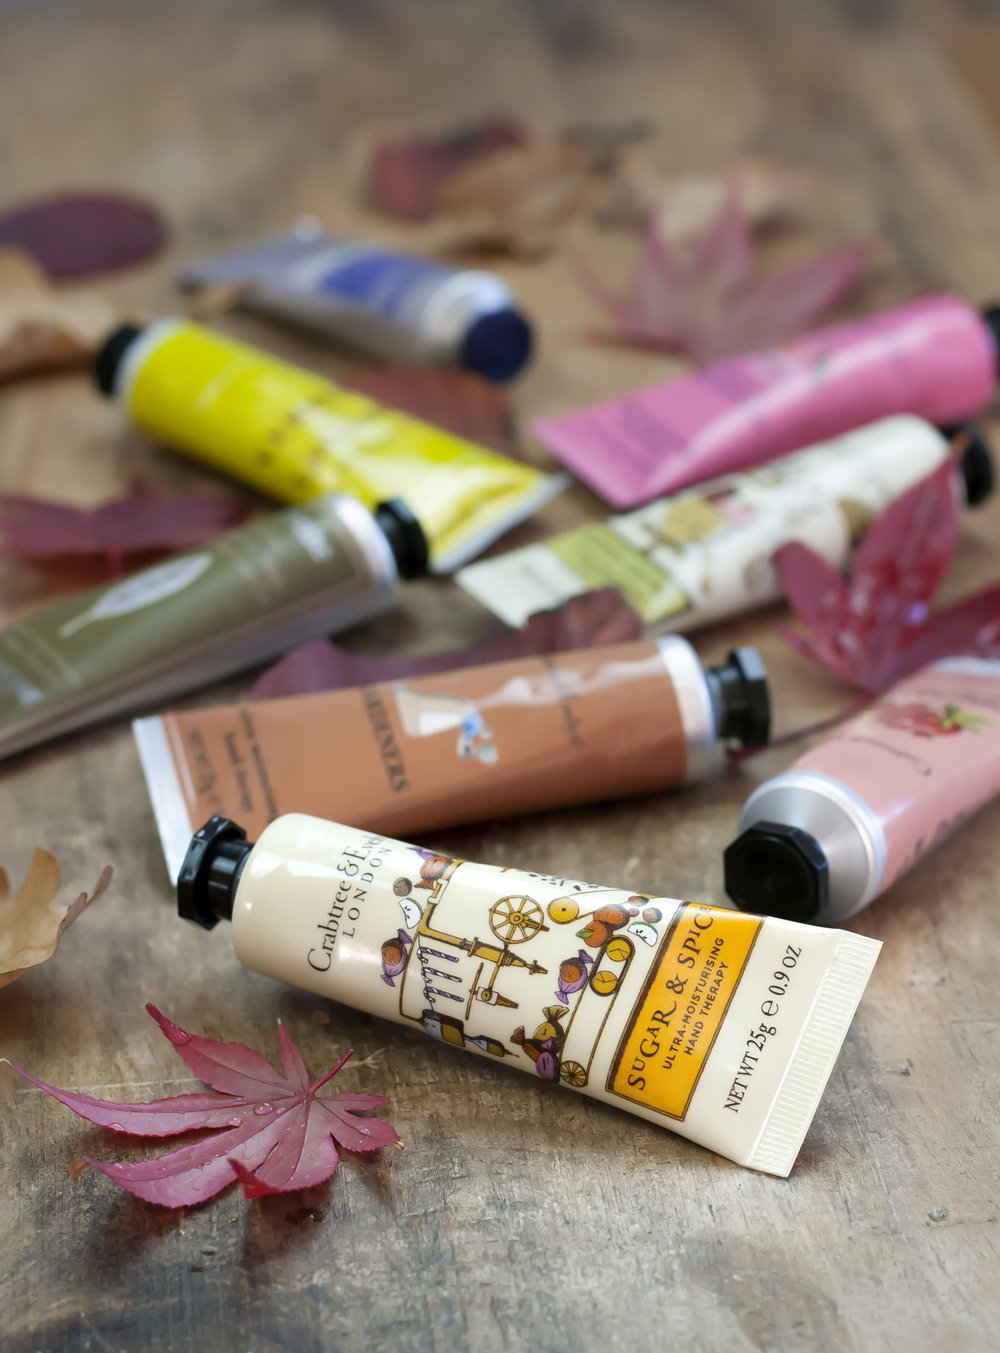 Tubes of handcream scattered among atumn leaves.